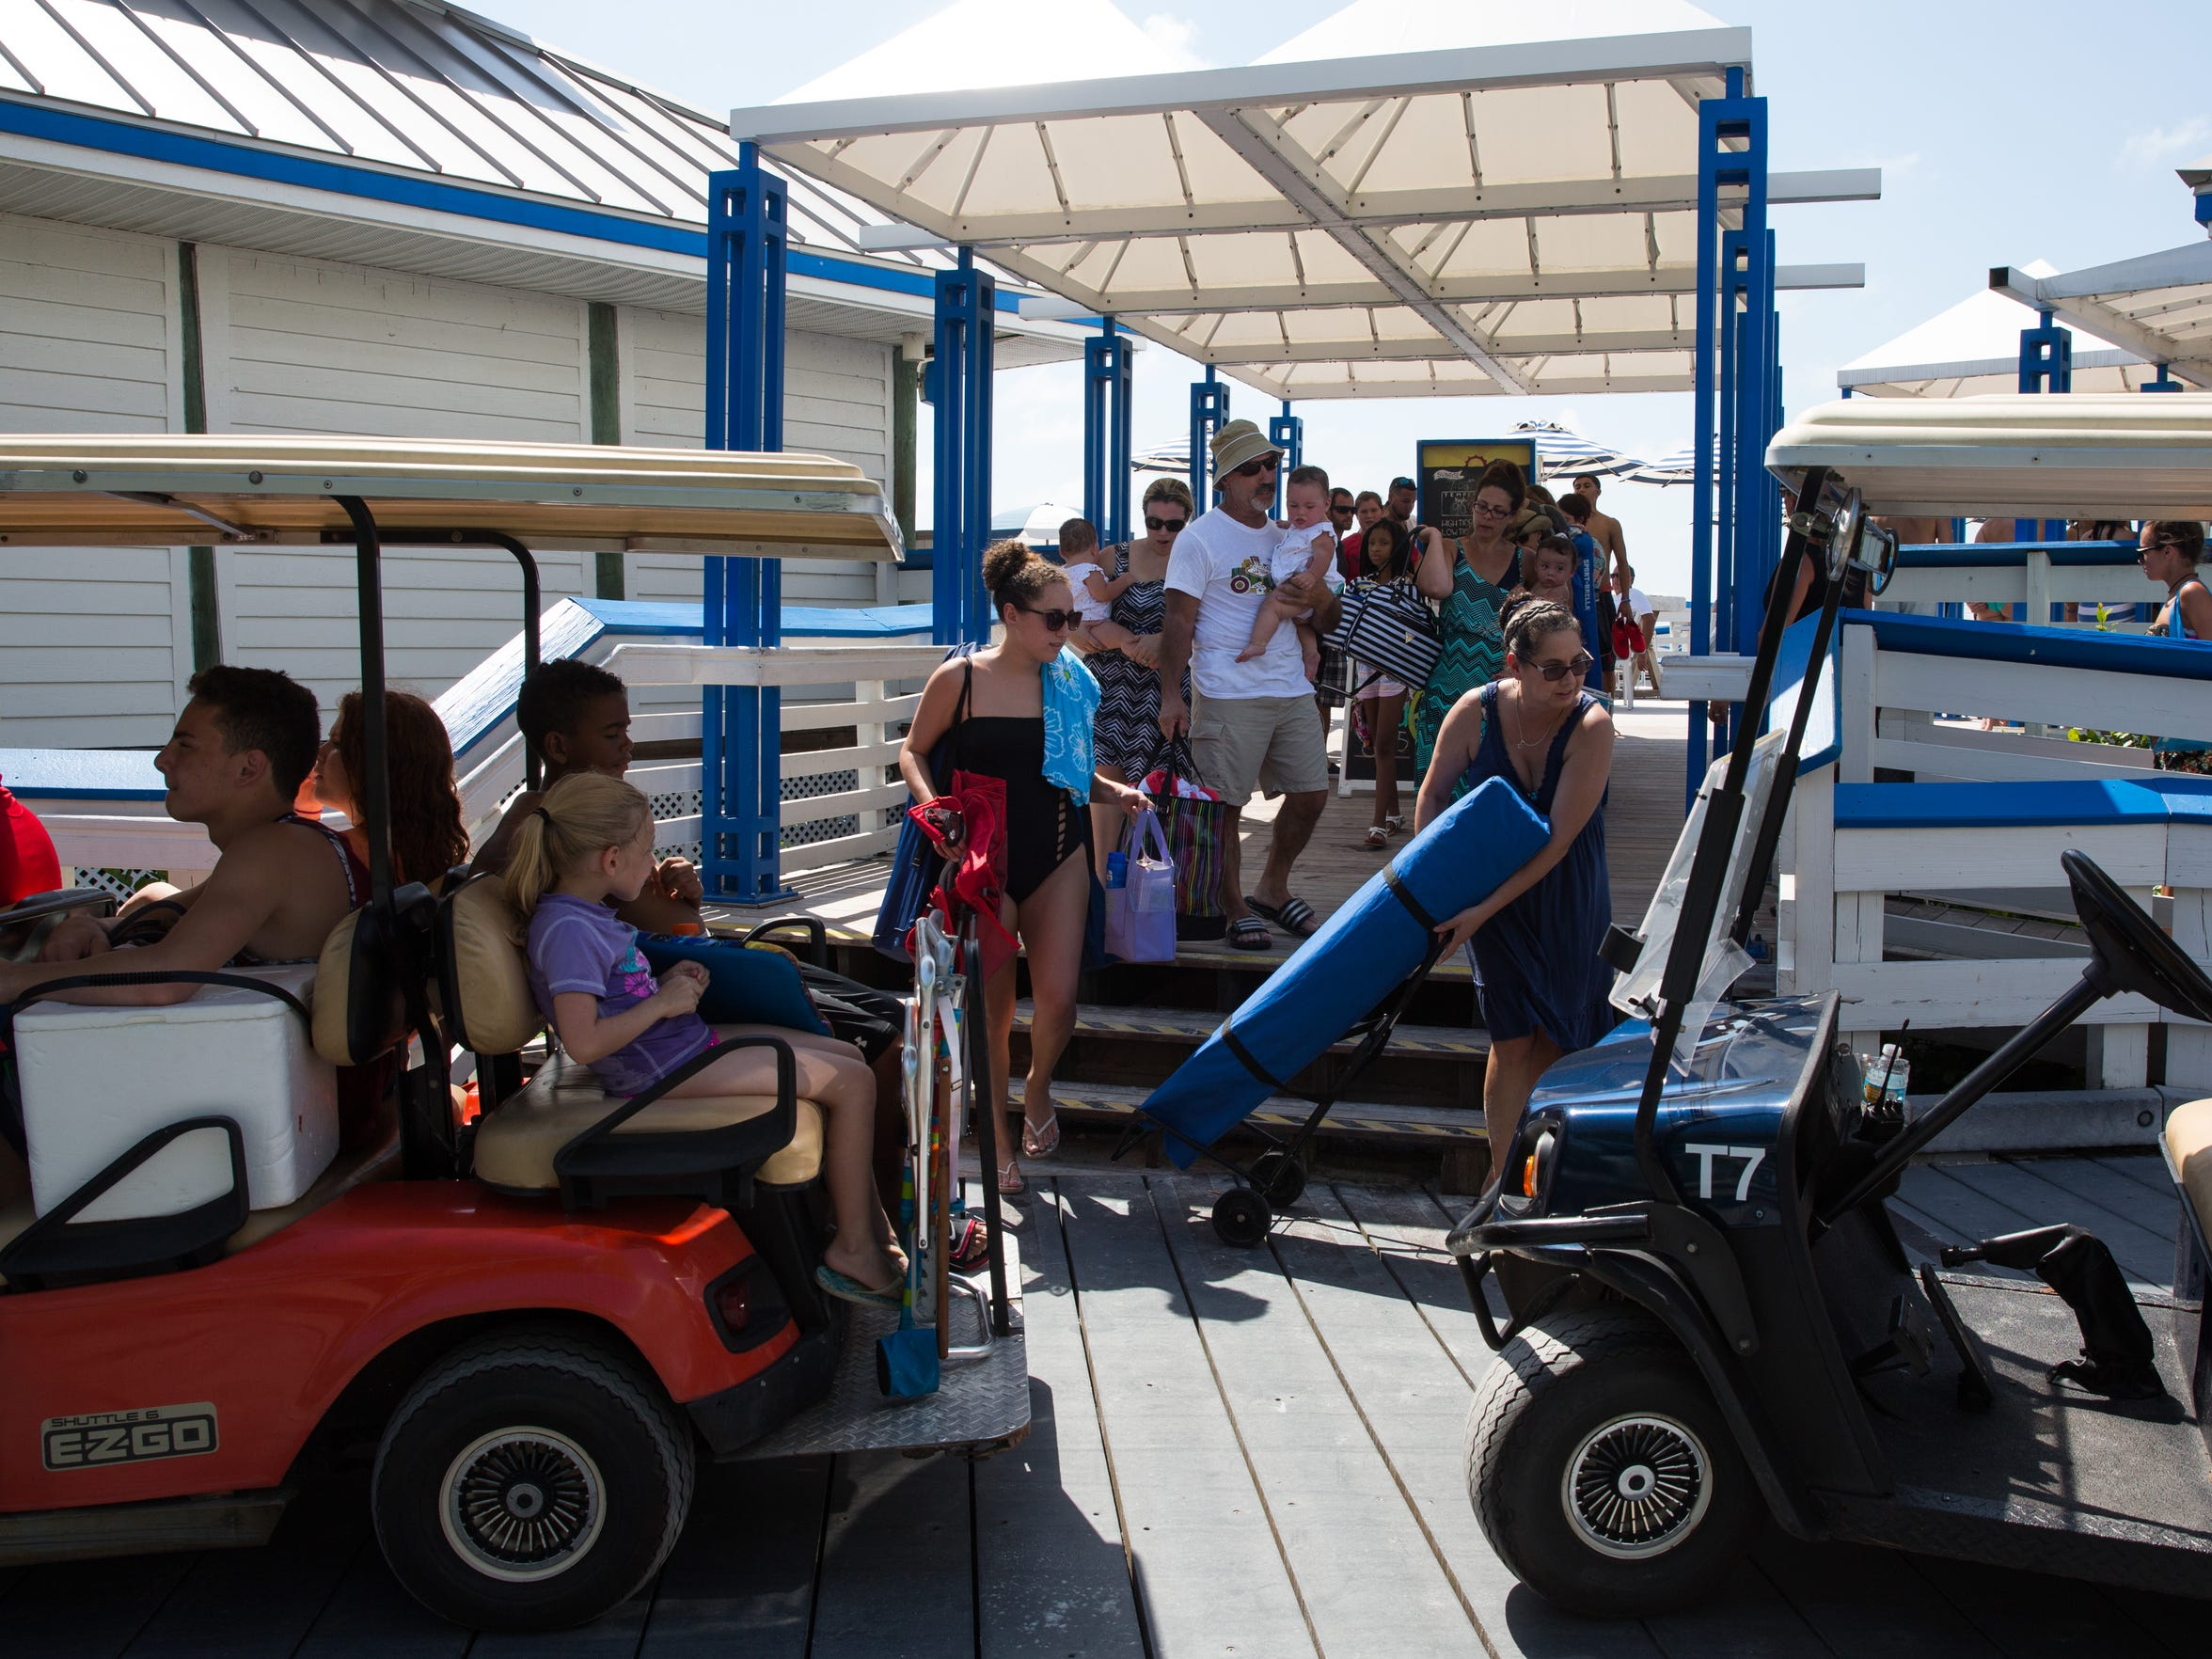 Beachgoers carry their belongings to the tram at the Clam Pass Park beach access point in Naples, Florida on Saturday, Sept. 10, 2016. Clam Pass Park has 171 public parking spaces, which are $8 or free to visitors who have a beach parking sticker.